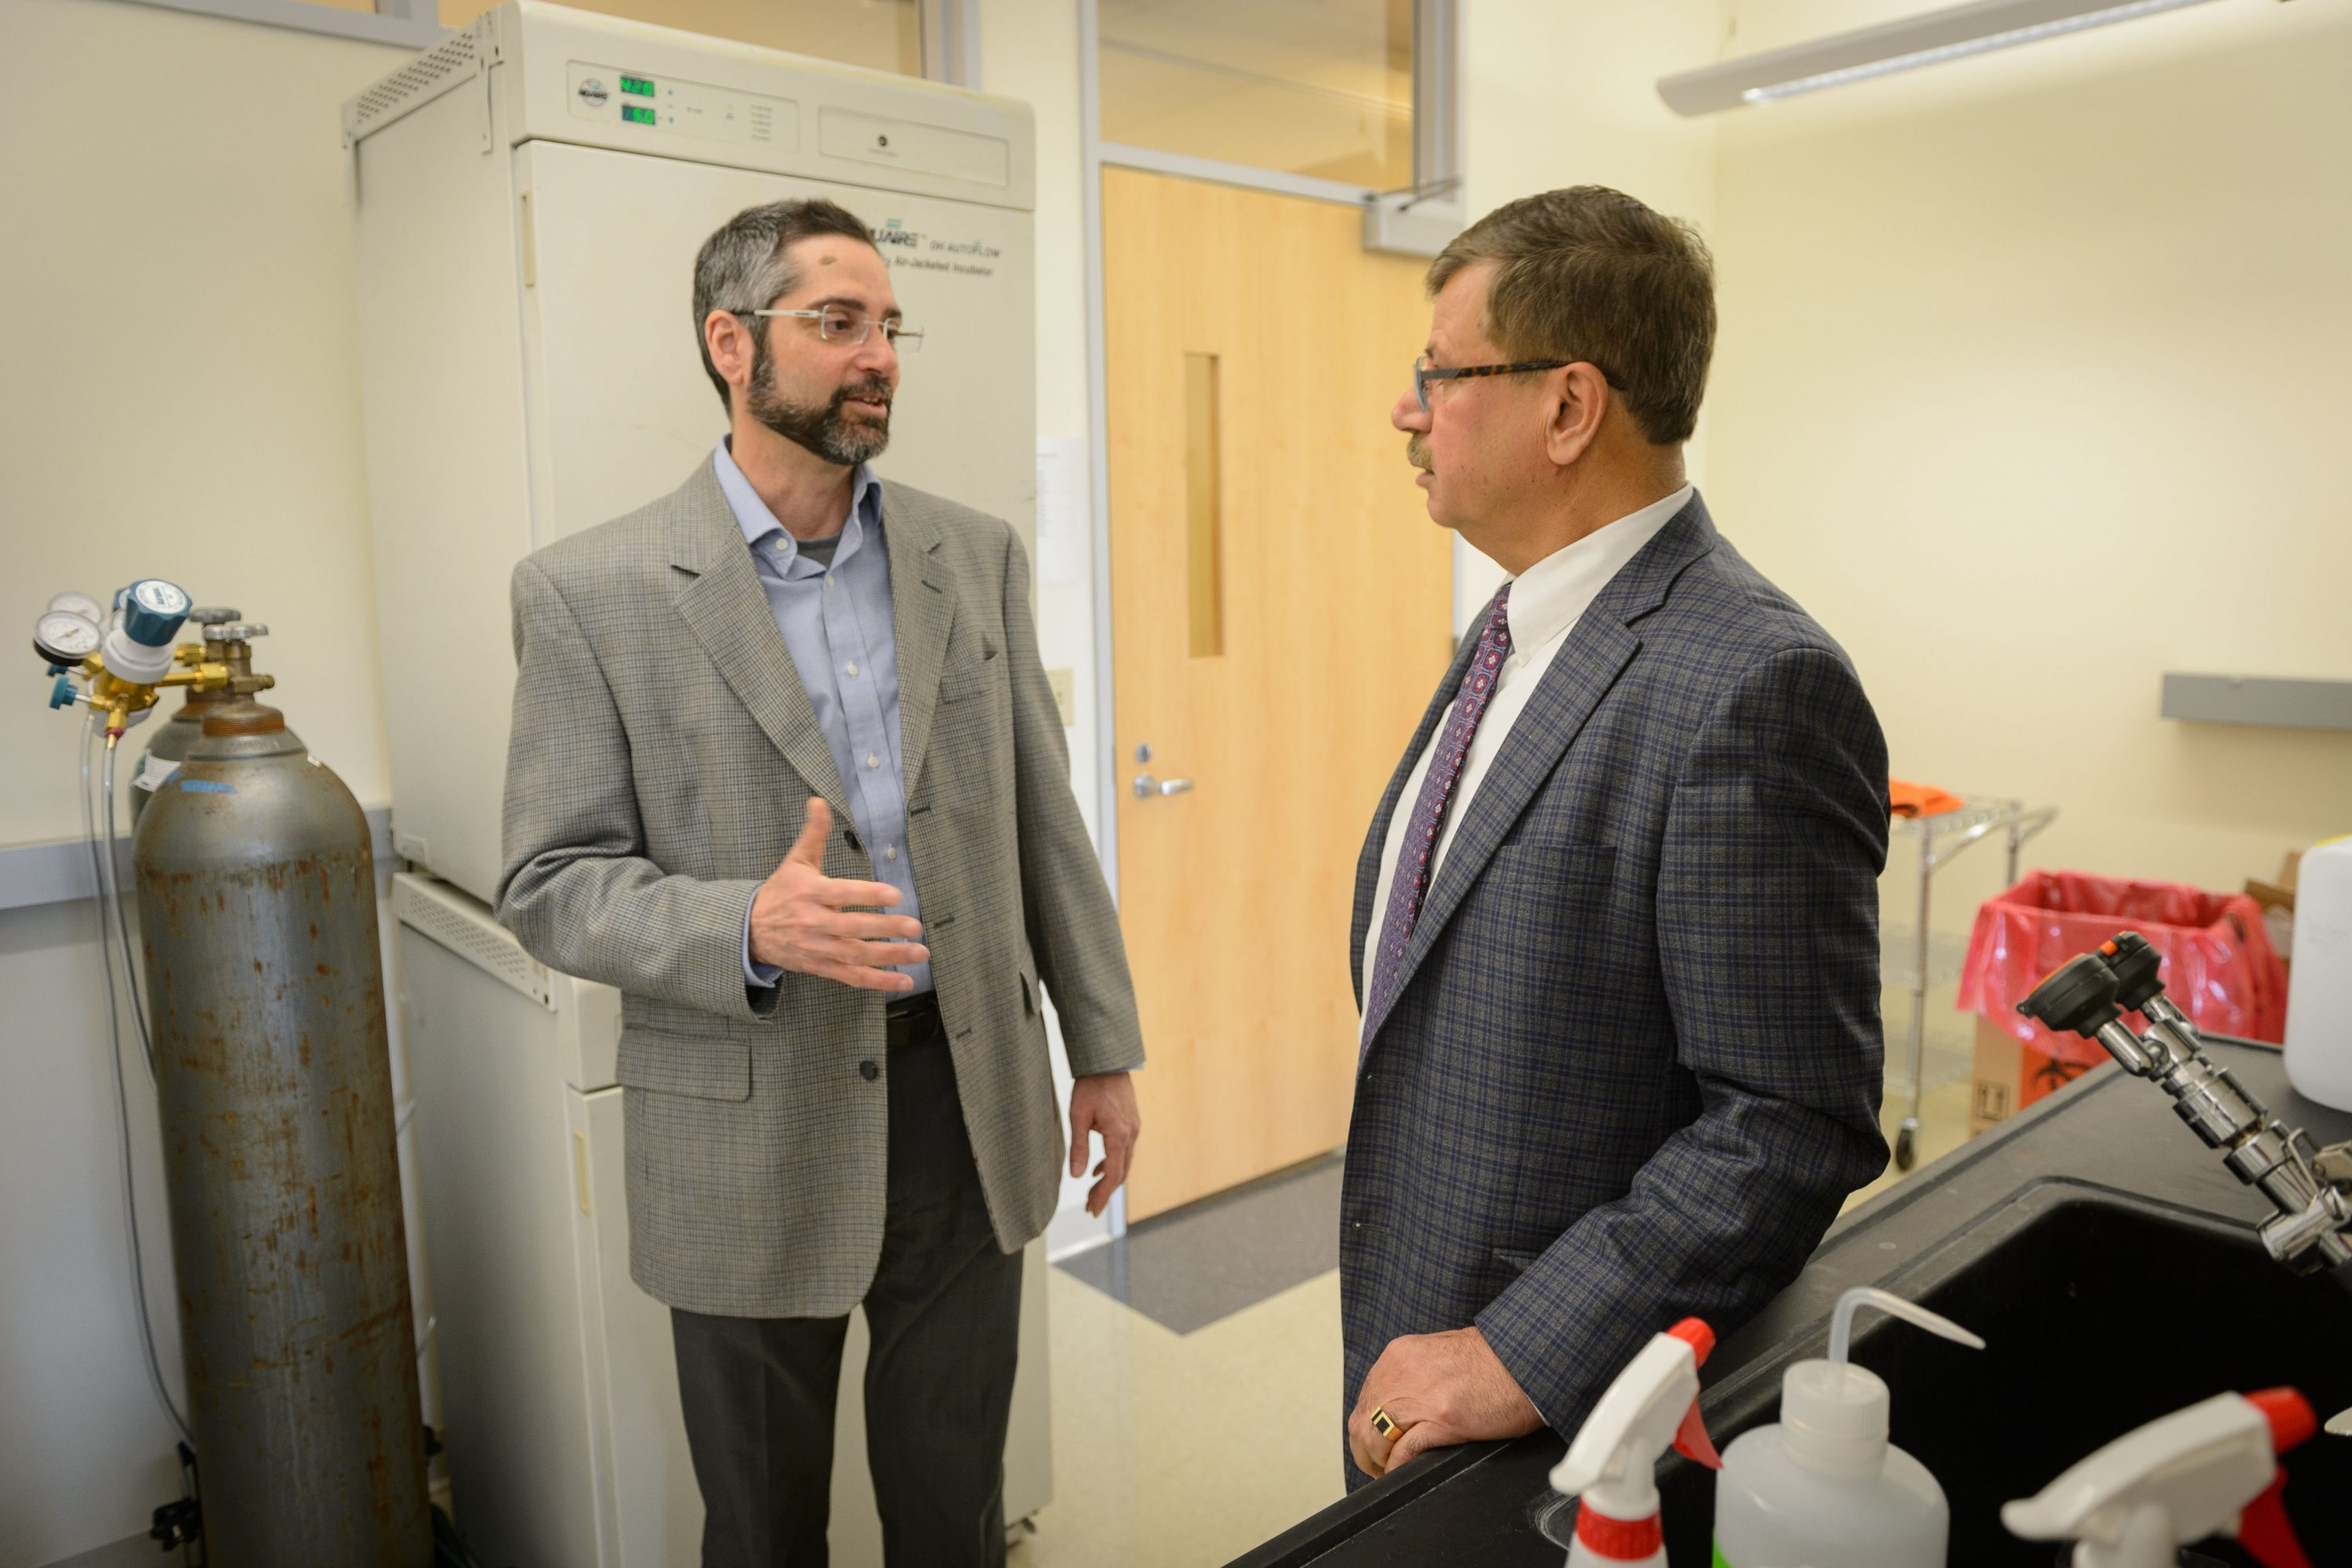 Anthony T. Vella, professor and Boehringer Ingelheim chair in immunology, left, speaks with President and CEO, Bijan Almassian at CaroGen Corp.'s technology incubation lab in Farmington on Dec. 12, 2016. (Peter Morenus/UConn Photo)